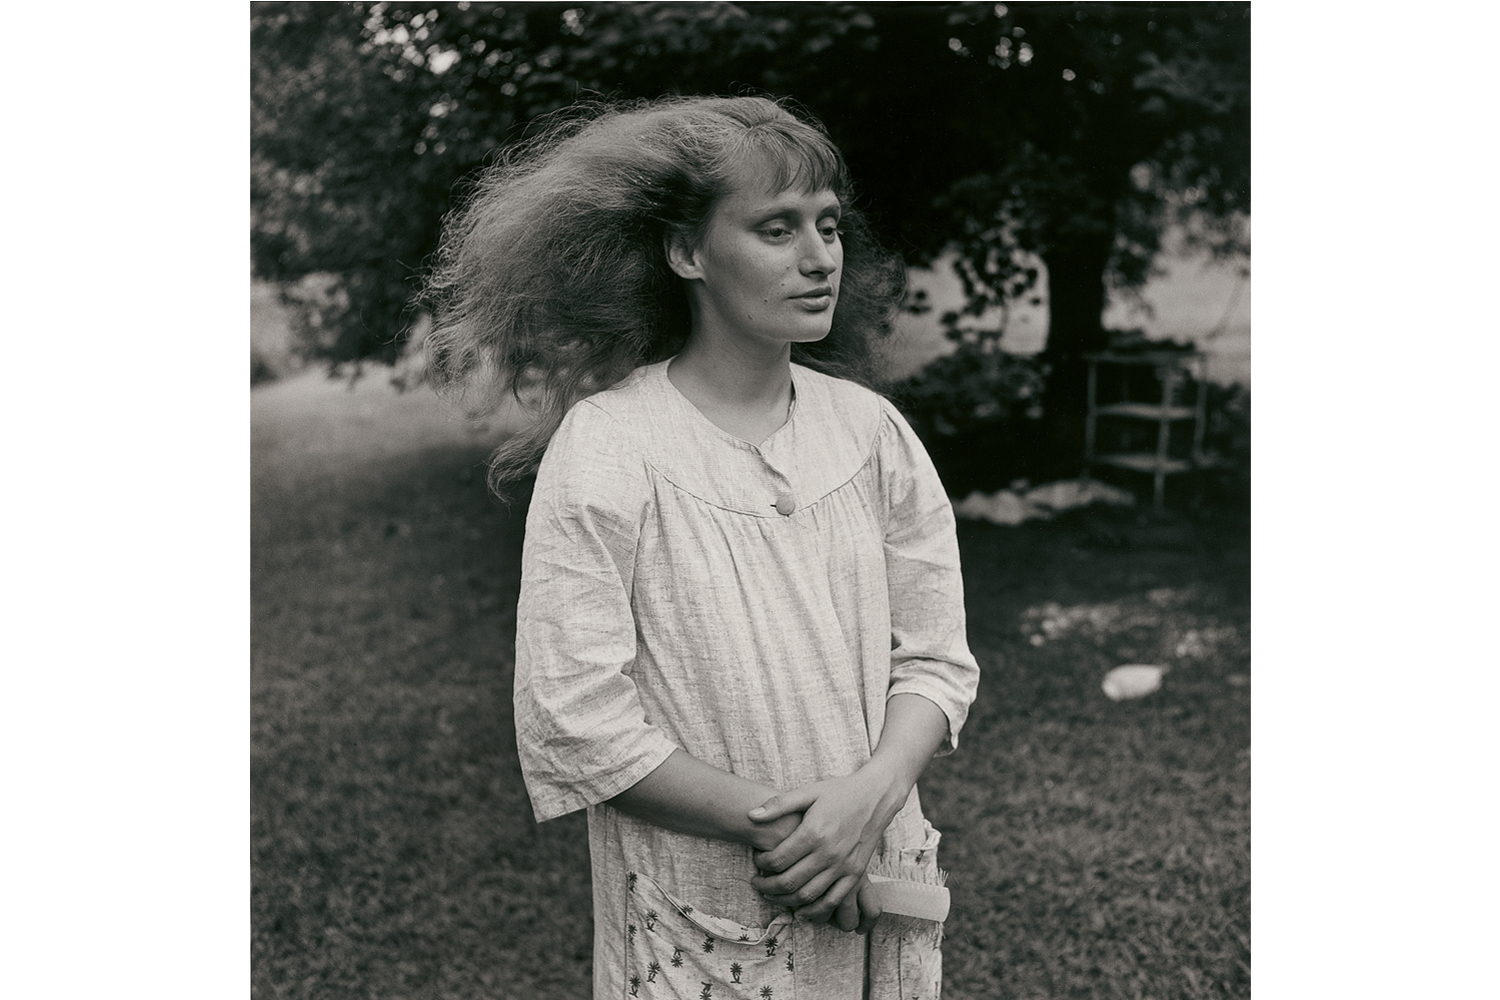 Pictured: Ruth, Danville, Virginia, 1968.                                A beautiful and long awaited monograph of quiet and intimate influence from a master photographer and teacher Emmet Gowin—whose writing is as eloquent and profound as his images are beautiful and sincere. —Phil Bicker, senior photo editor, TIME.                                                               There are things in your life that only you will see, stories that only you will hear. If you don't write them down, if you don't make the picture, these things will not be seen, these things will not be heard. —Emmett Gowin